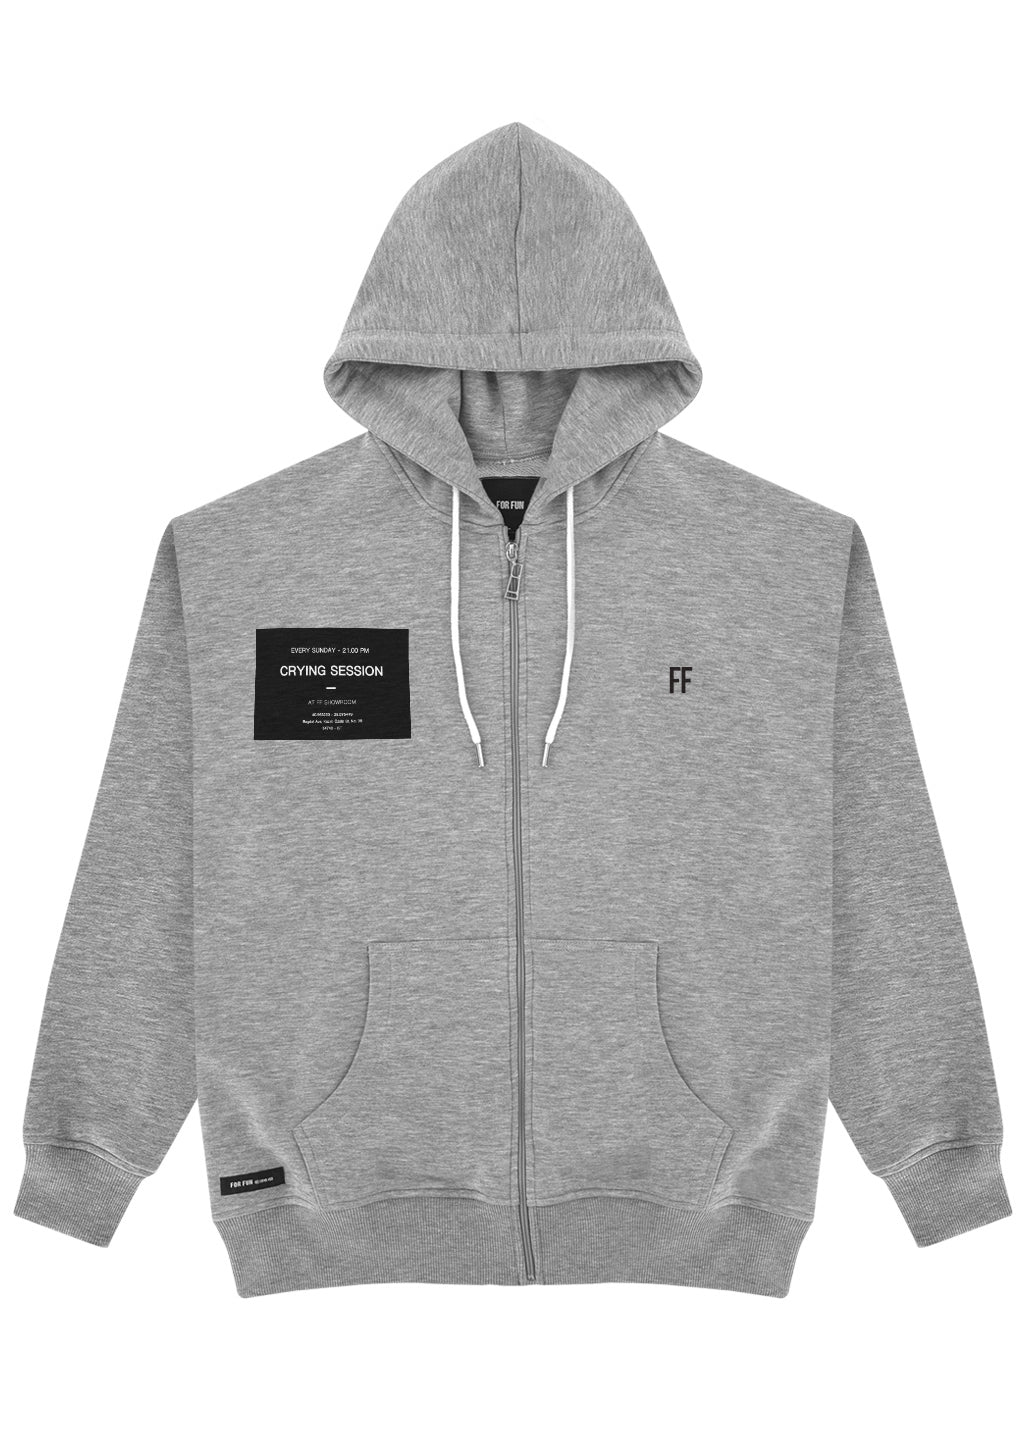 Crying Session / Unisex Zip Up Hoodie (GREY)